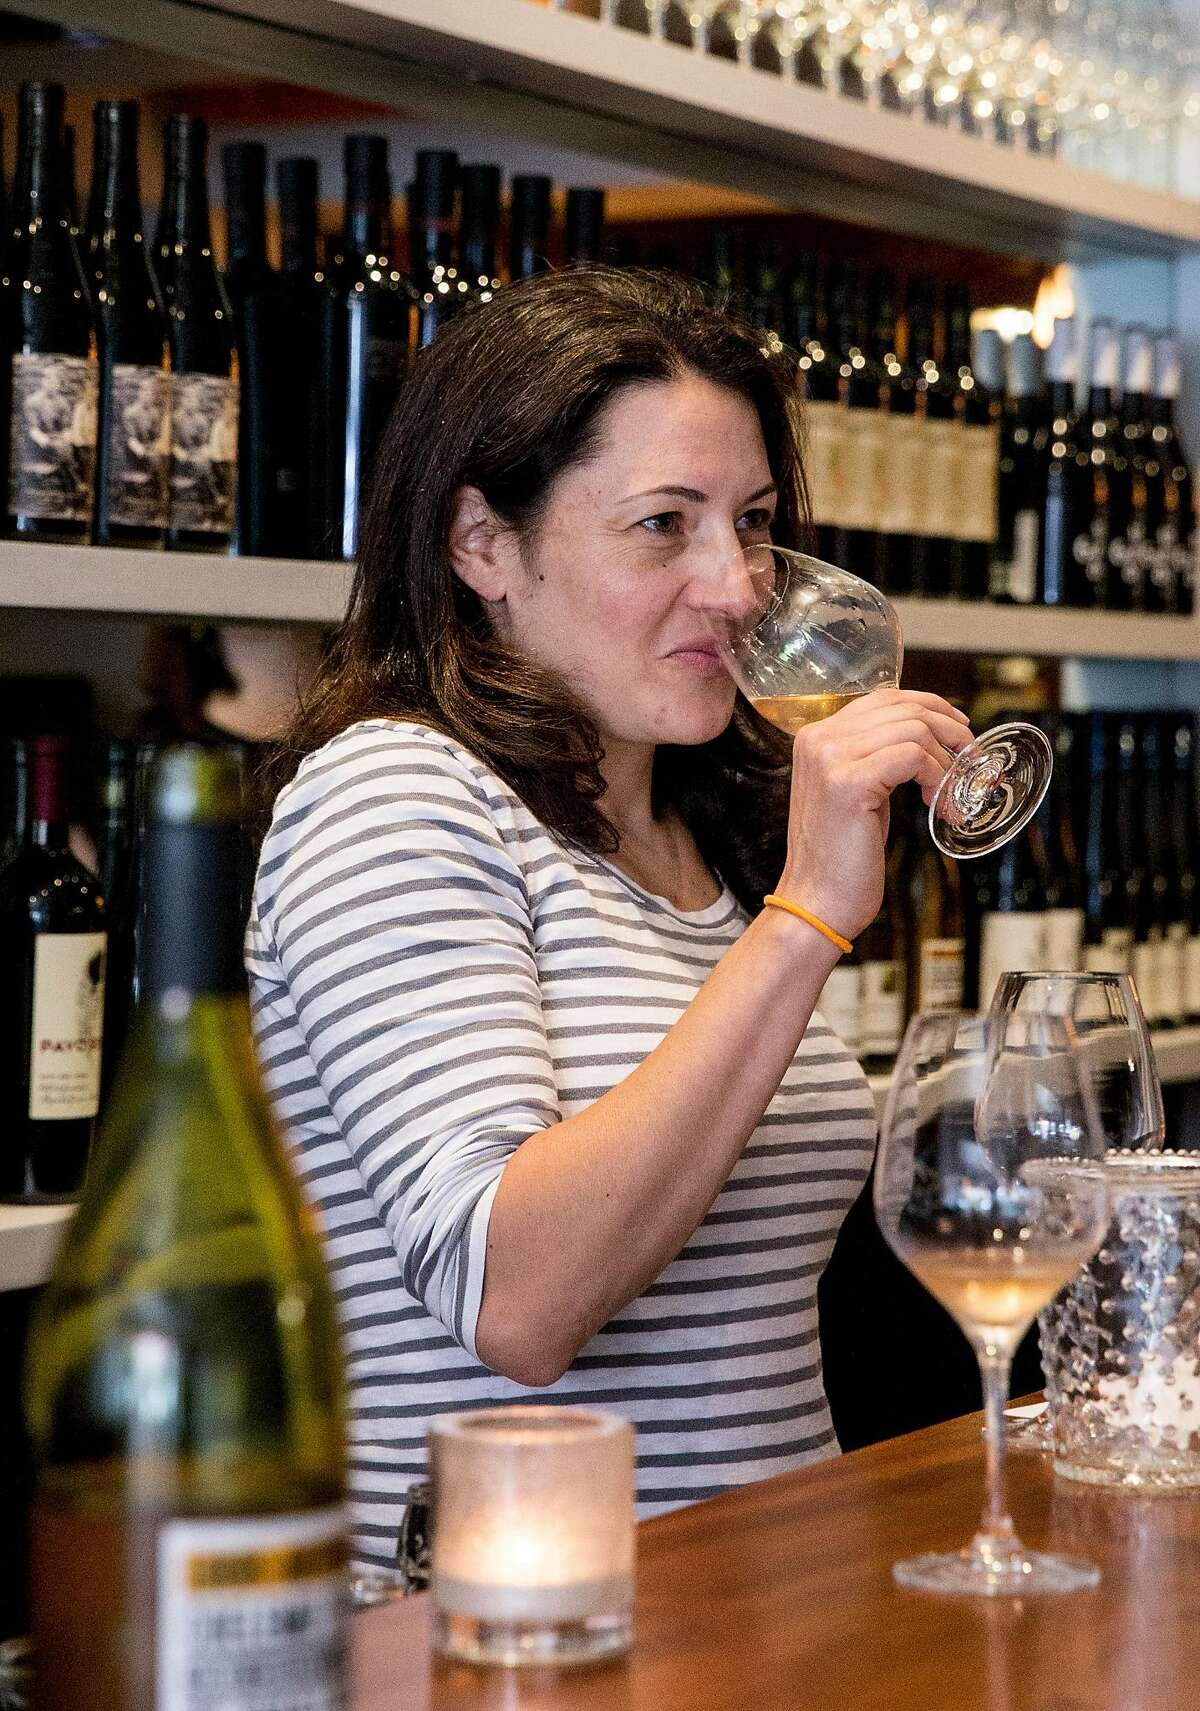 Wine director Sarah Trubnick tastes potential new wines with a seller at Parigo in the Marina district of San Francisco, Calif. Thursday, July 19, 2018.